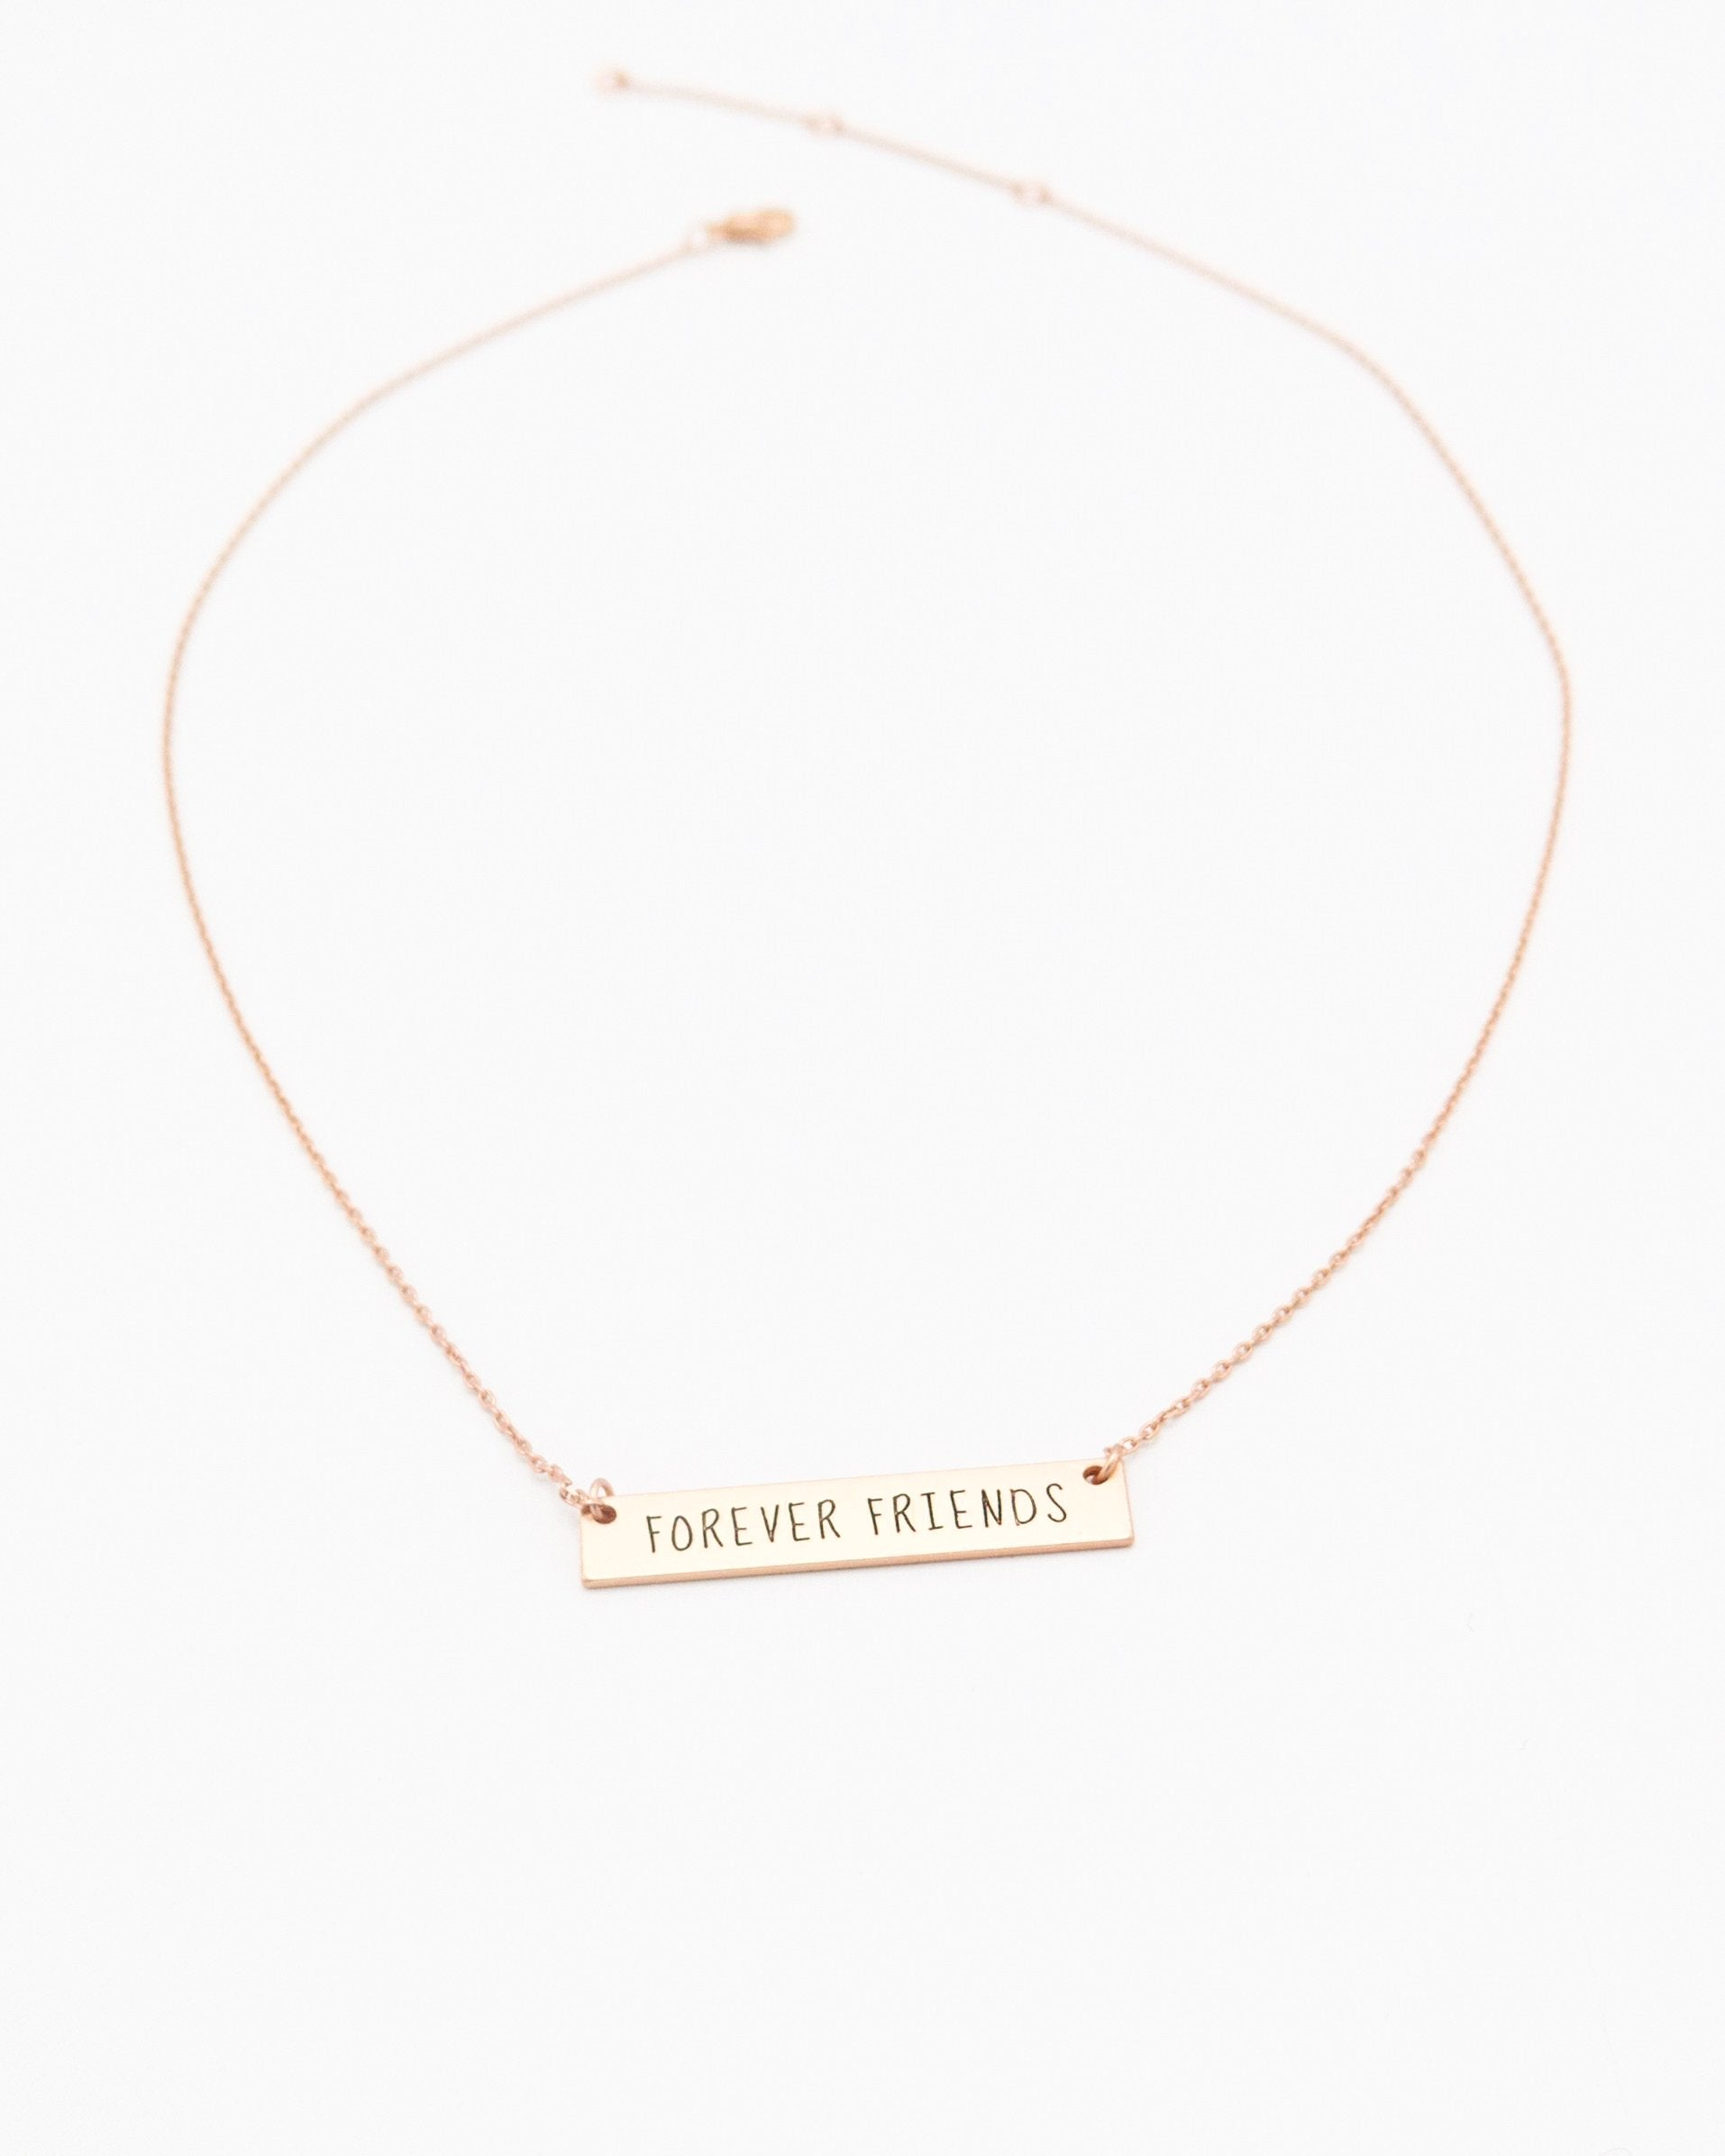 Forever Friends Bar Necklace in rose gold